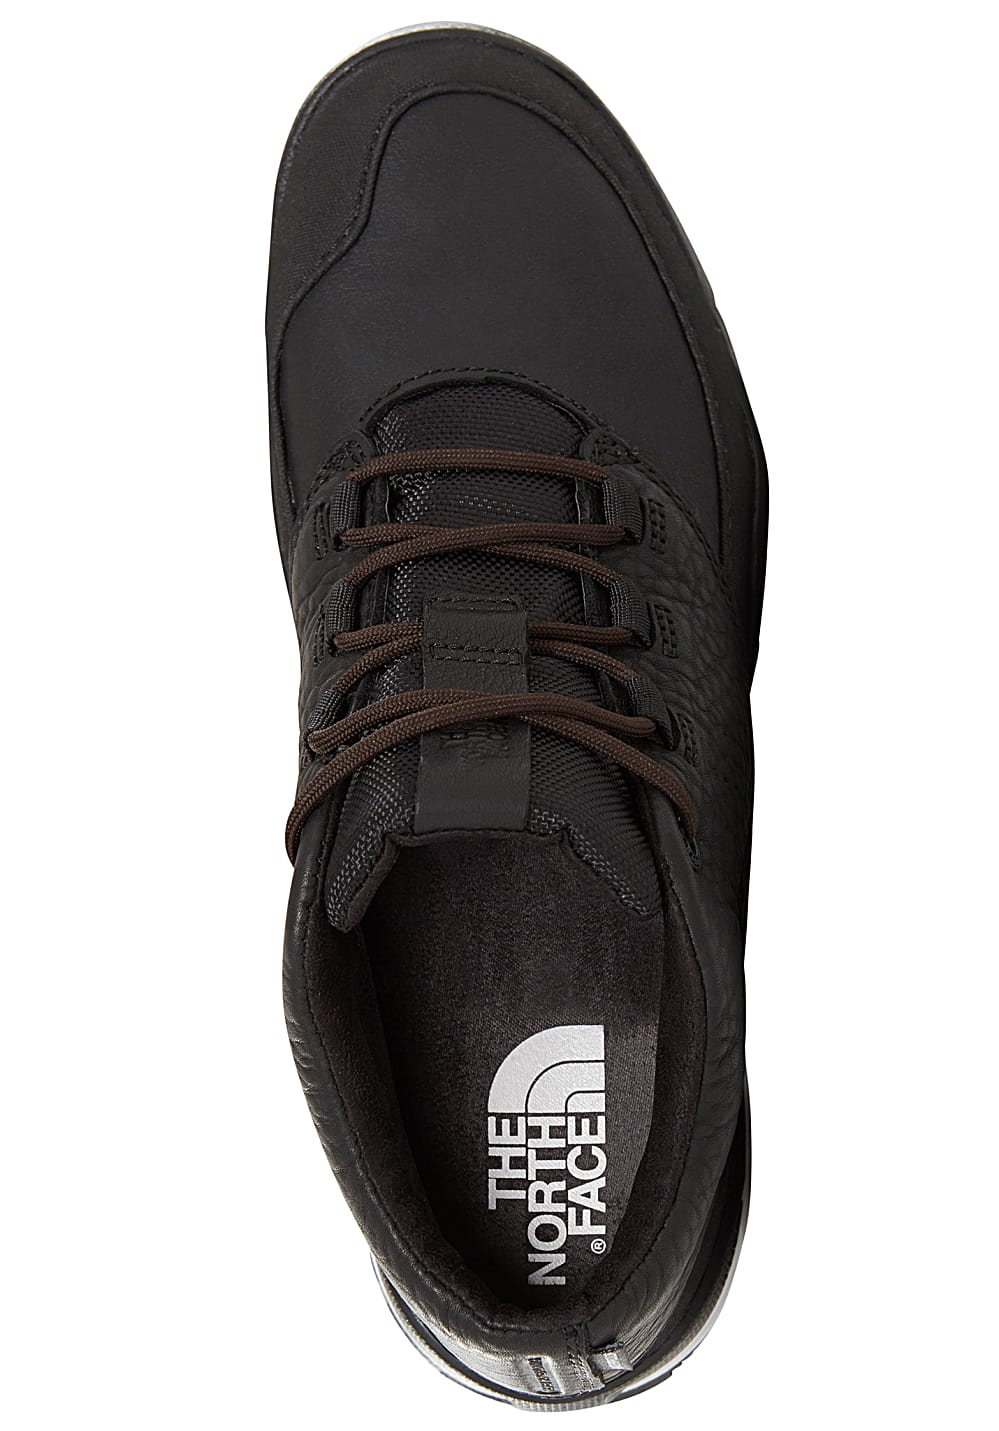 36f8c9a4d THE NORTH FACE Edgewood Chukka - Hiking Shoes for Men - Black